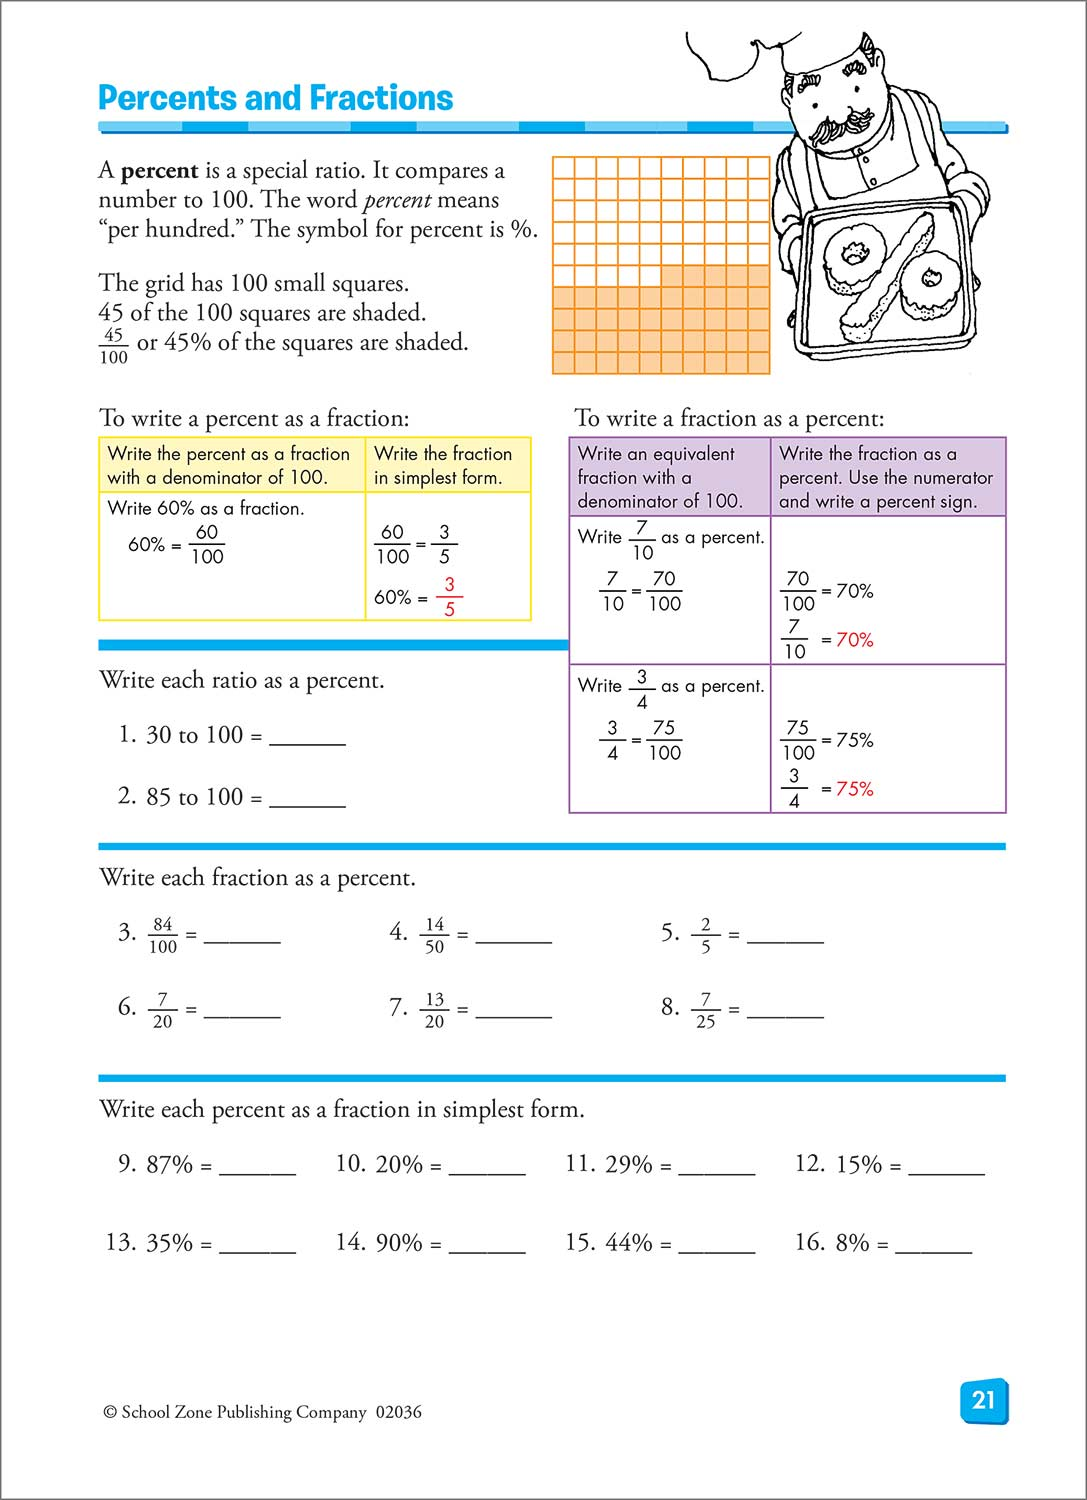 Fifth Grade & Sixth Grade Workbooks - Math Basics - Fun Stuff Toys